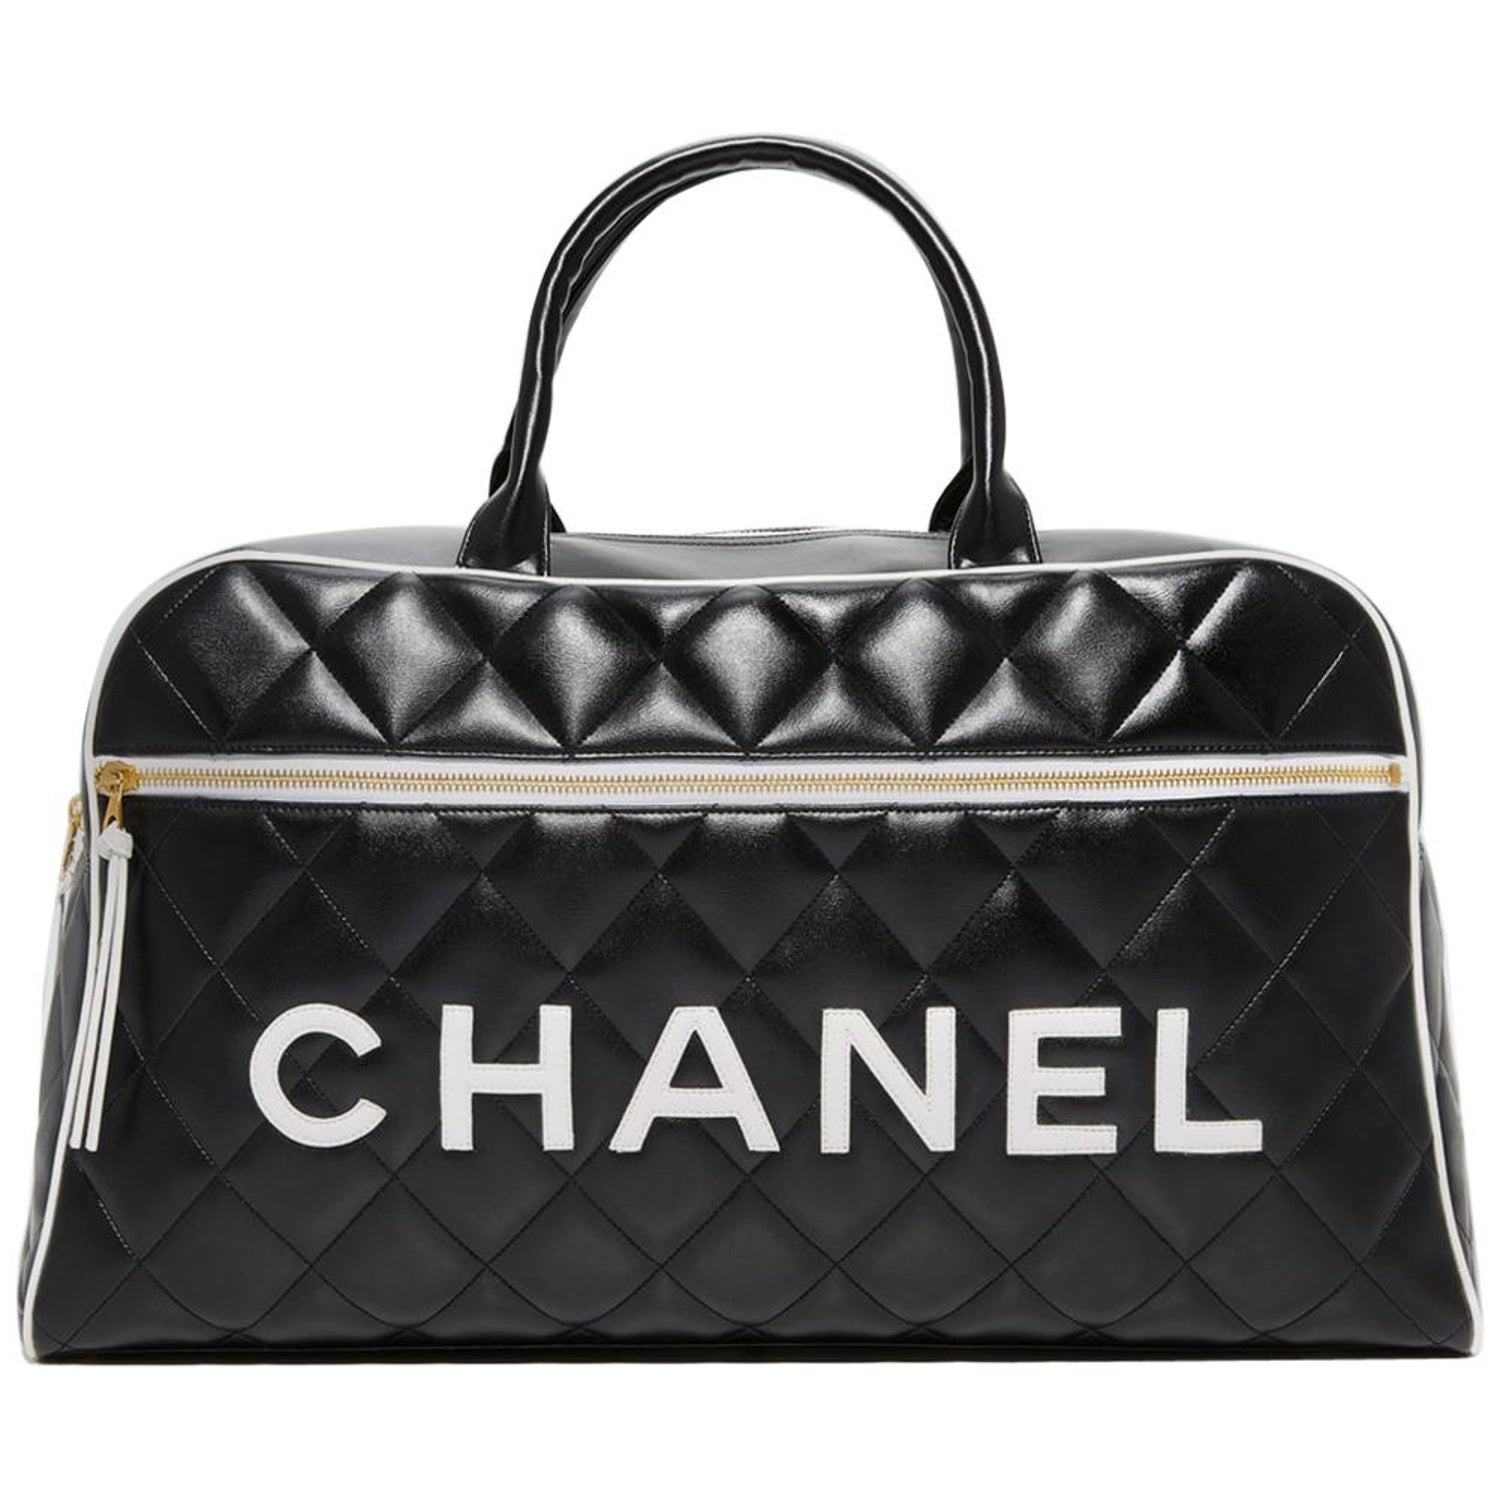 07bbce013be2 Chanel Logo Letters Vintage Rare 1990's Quited Duffel Bag Travel Tote For  Sale at 1stdibs